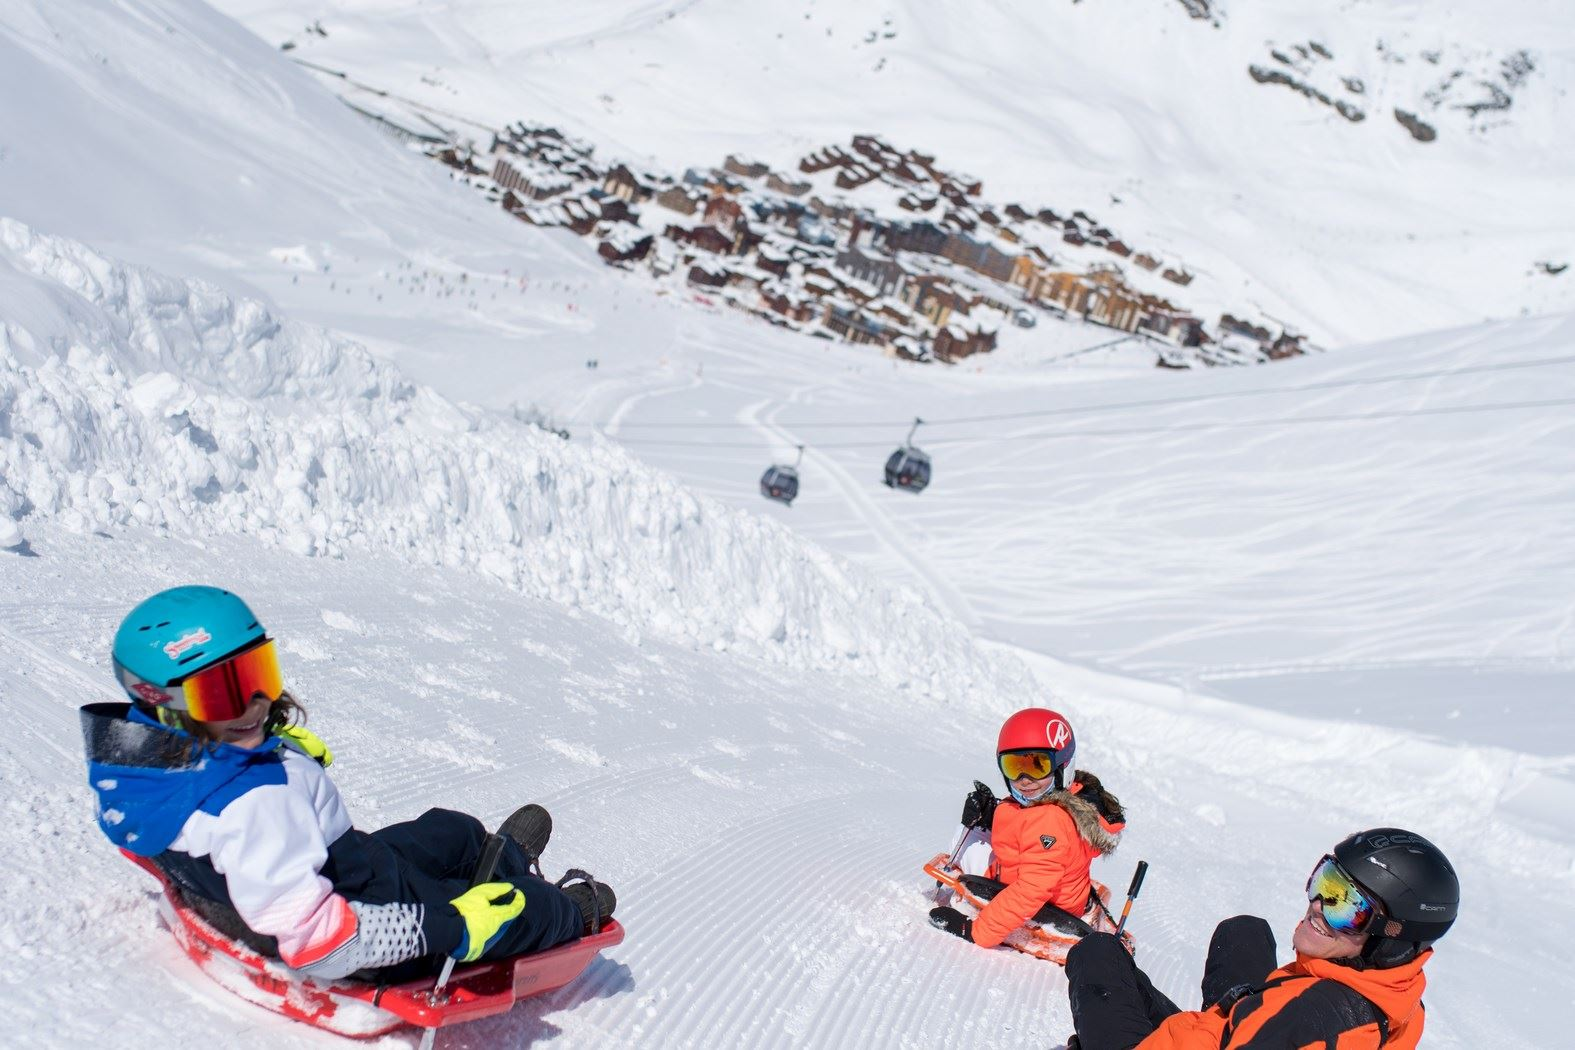 2 sledge runs - COSMOJET - descents during the day available for only one person